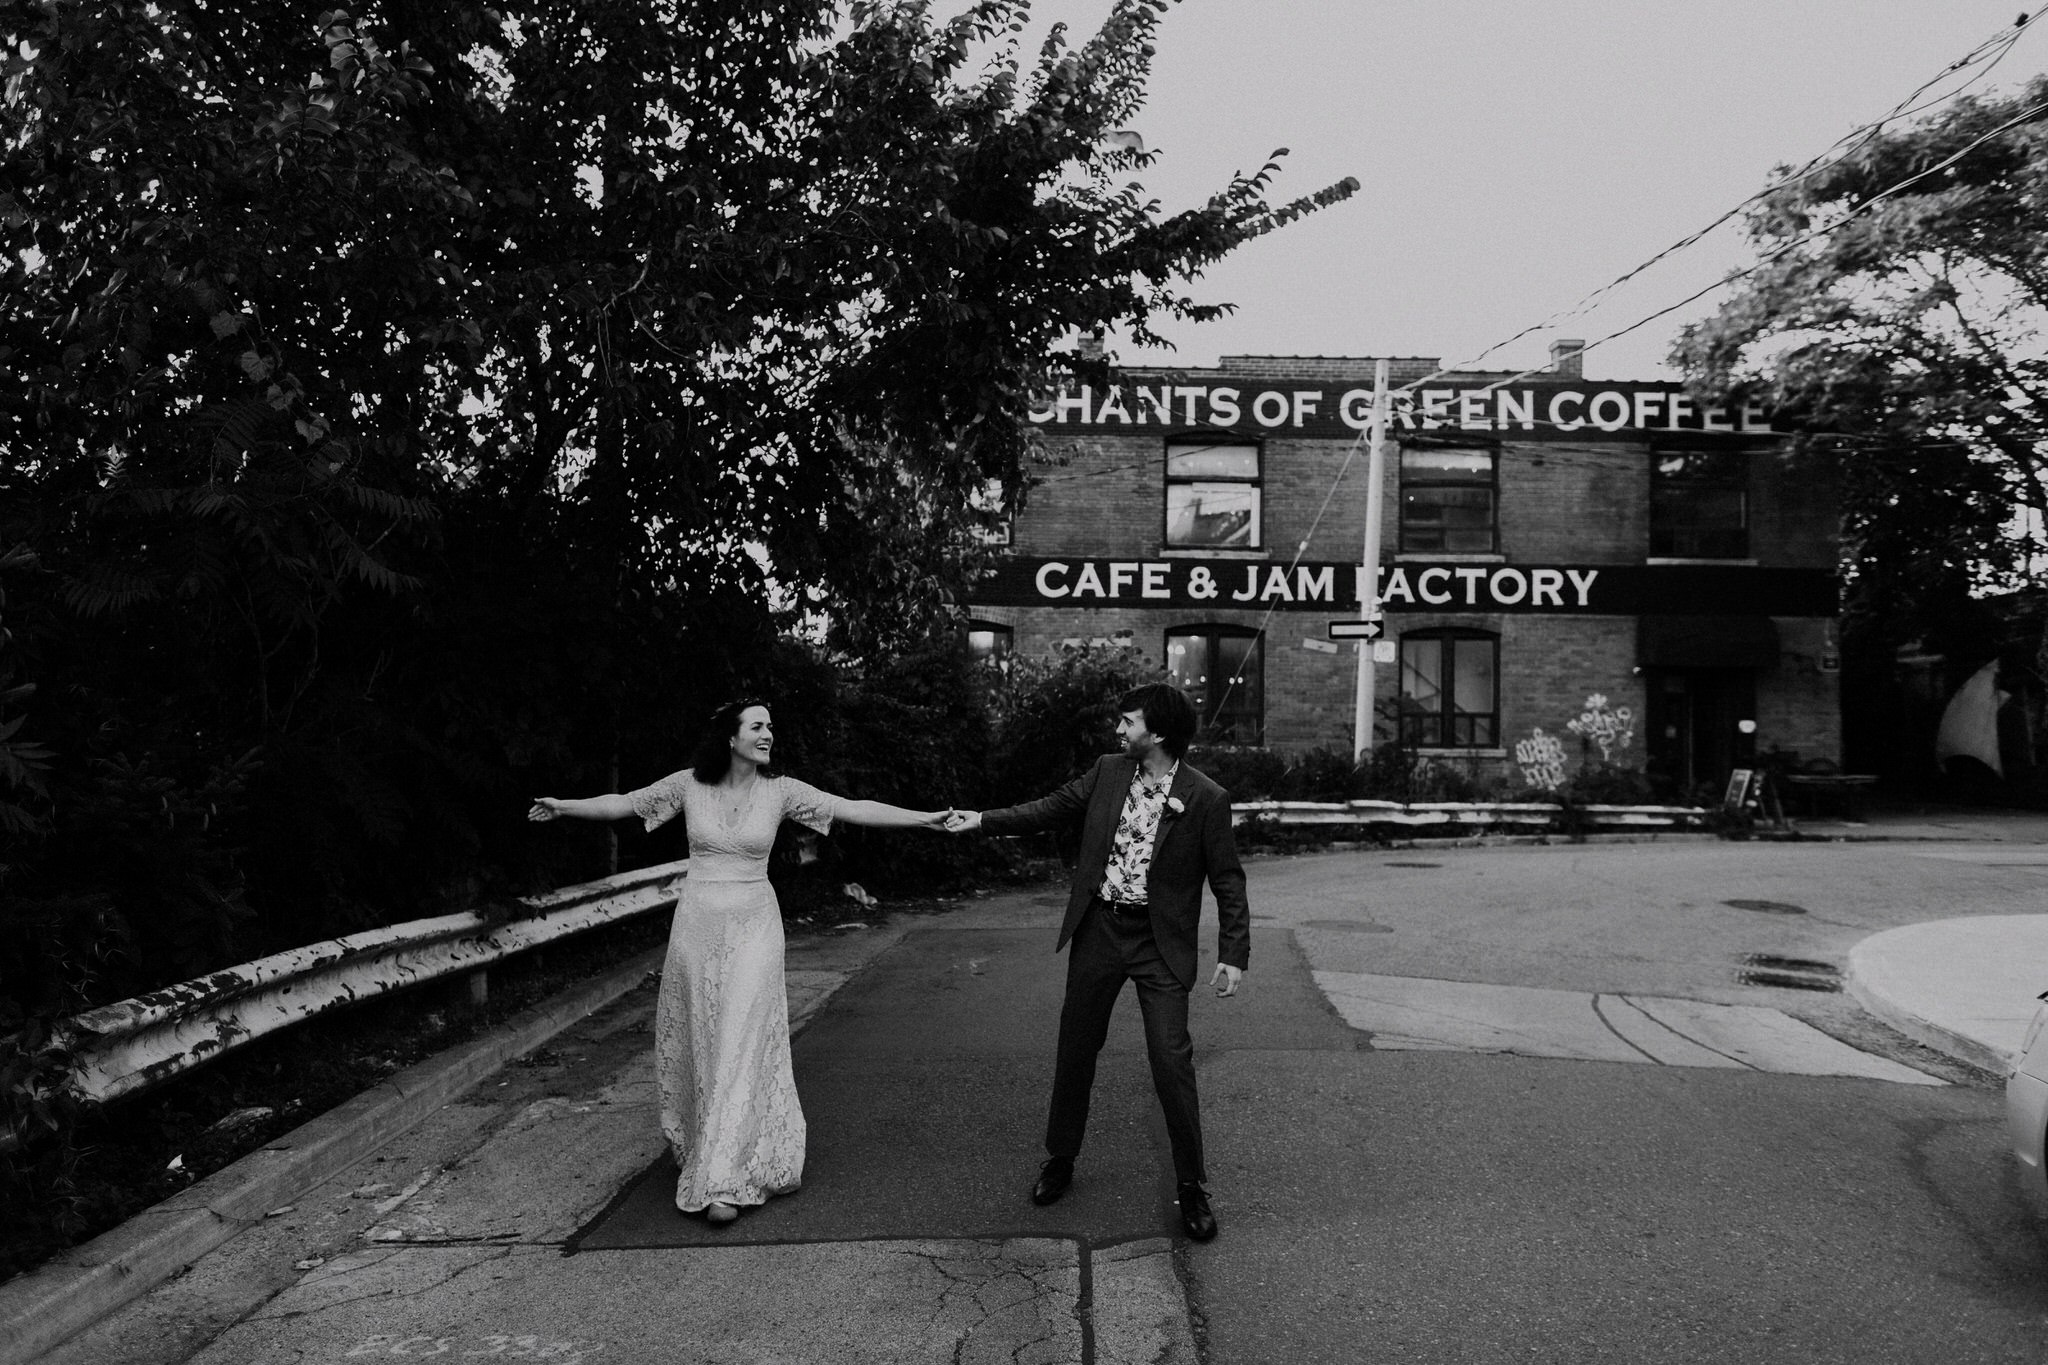 Merchants of Green Coffee Wedding - dancing outside